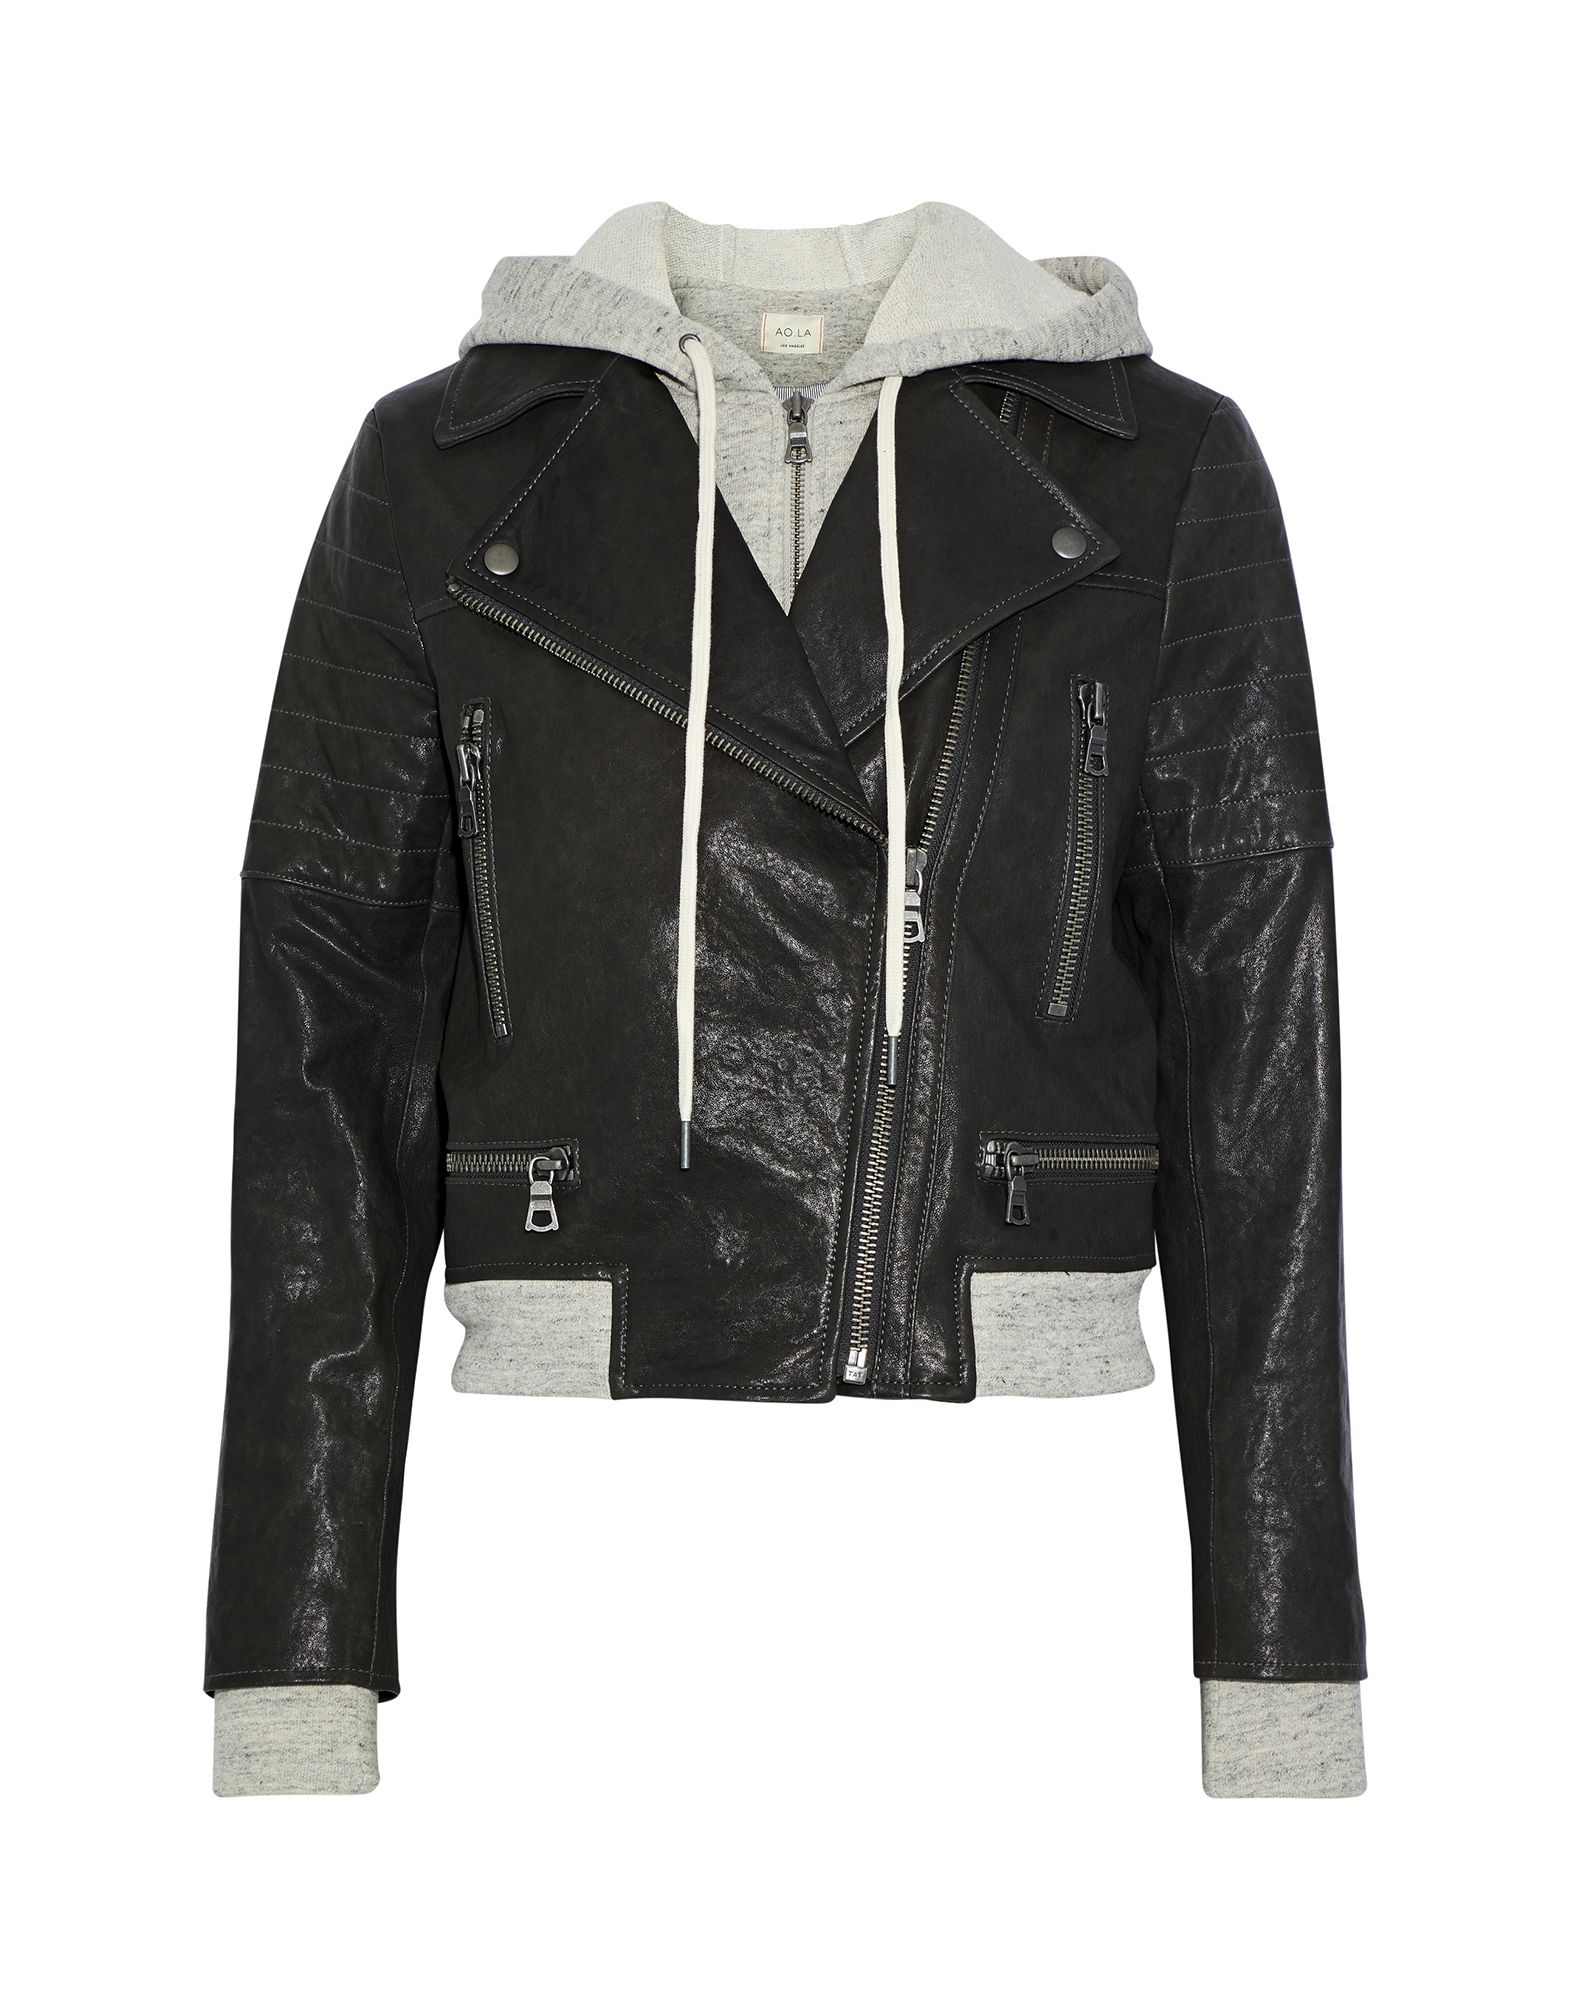 ALICE + OLIVIA Jackets. sweatshirt fleece, leather, no appliqués, solid color, single-breasted, zipper closure, hooded collar, multipockets, long sleeves, fully lined, contains non-textile parts of animal origin, large sized. 100% Lambskin, Cotton, Linen